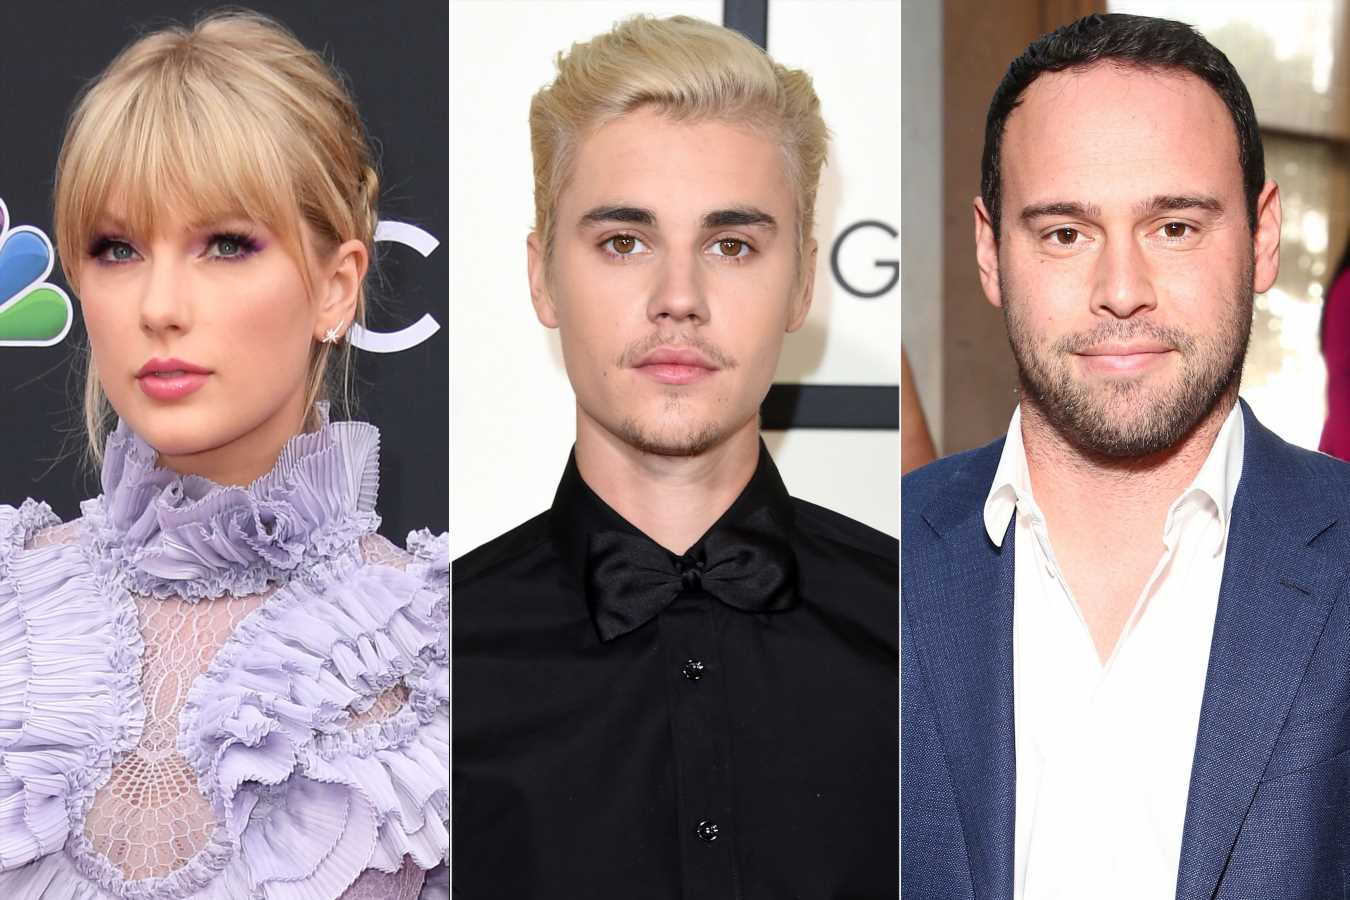 Justin Bieber Defends Scooter Braun After Taylor Swift Accuses Manager of 'Bullying' Her